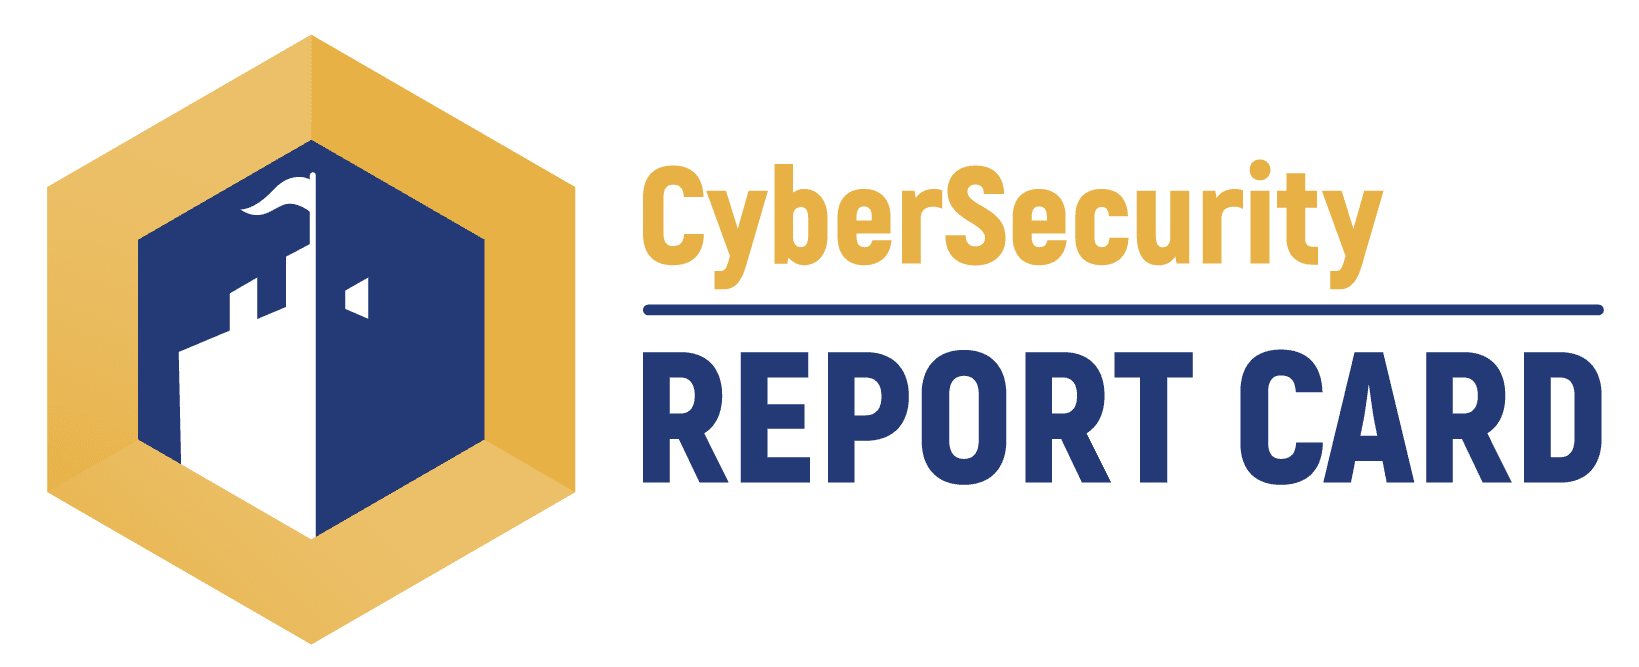 Cybersecurity Report Card Logo - cybersecurity assessment